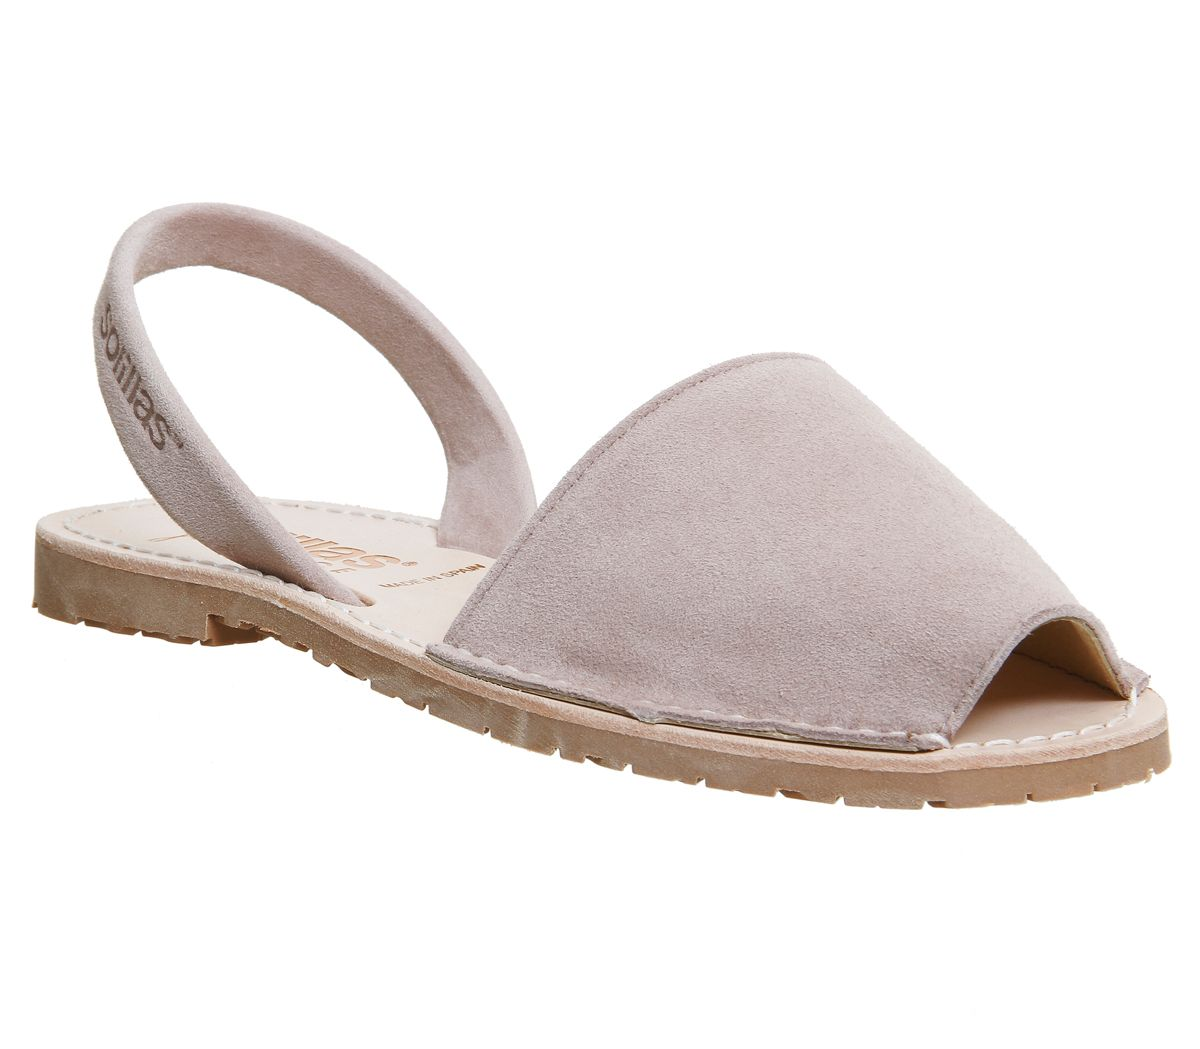 Solillas Solillas sandals, Grey